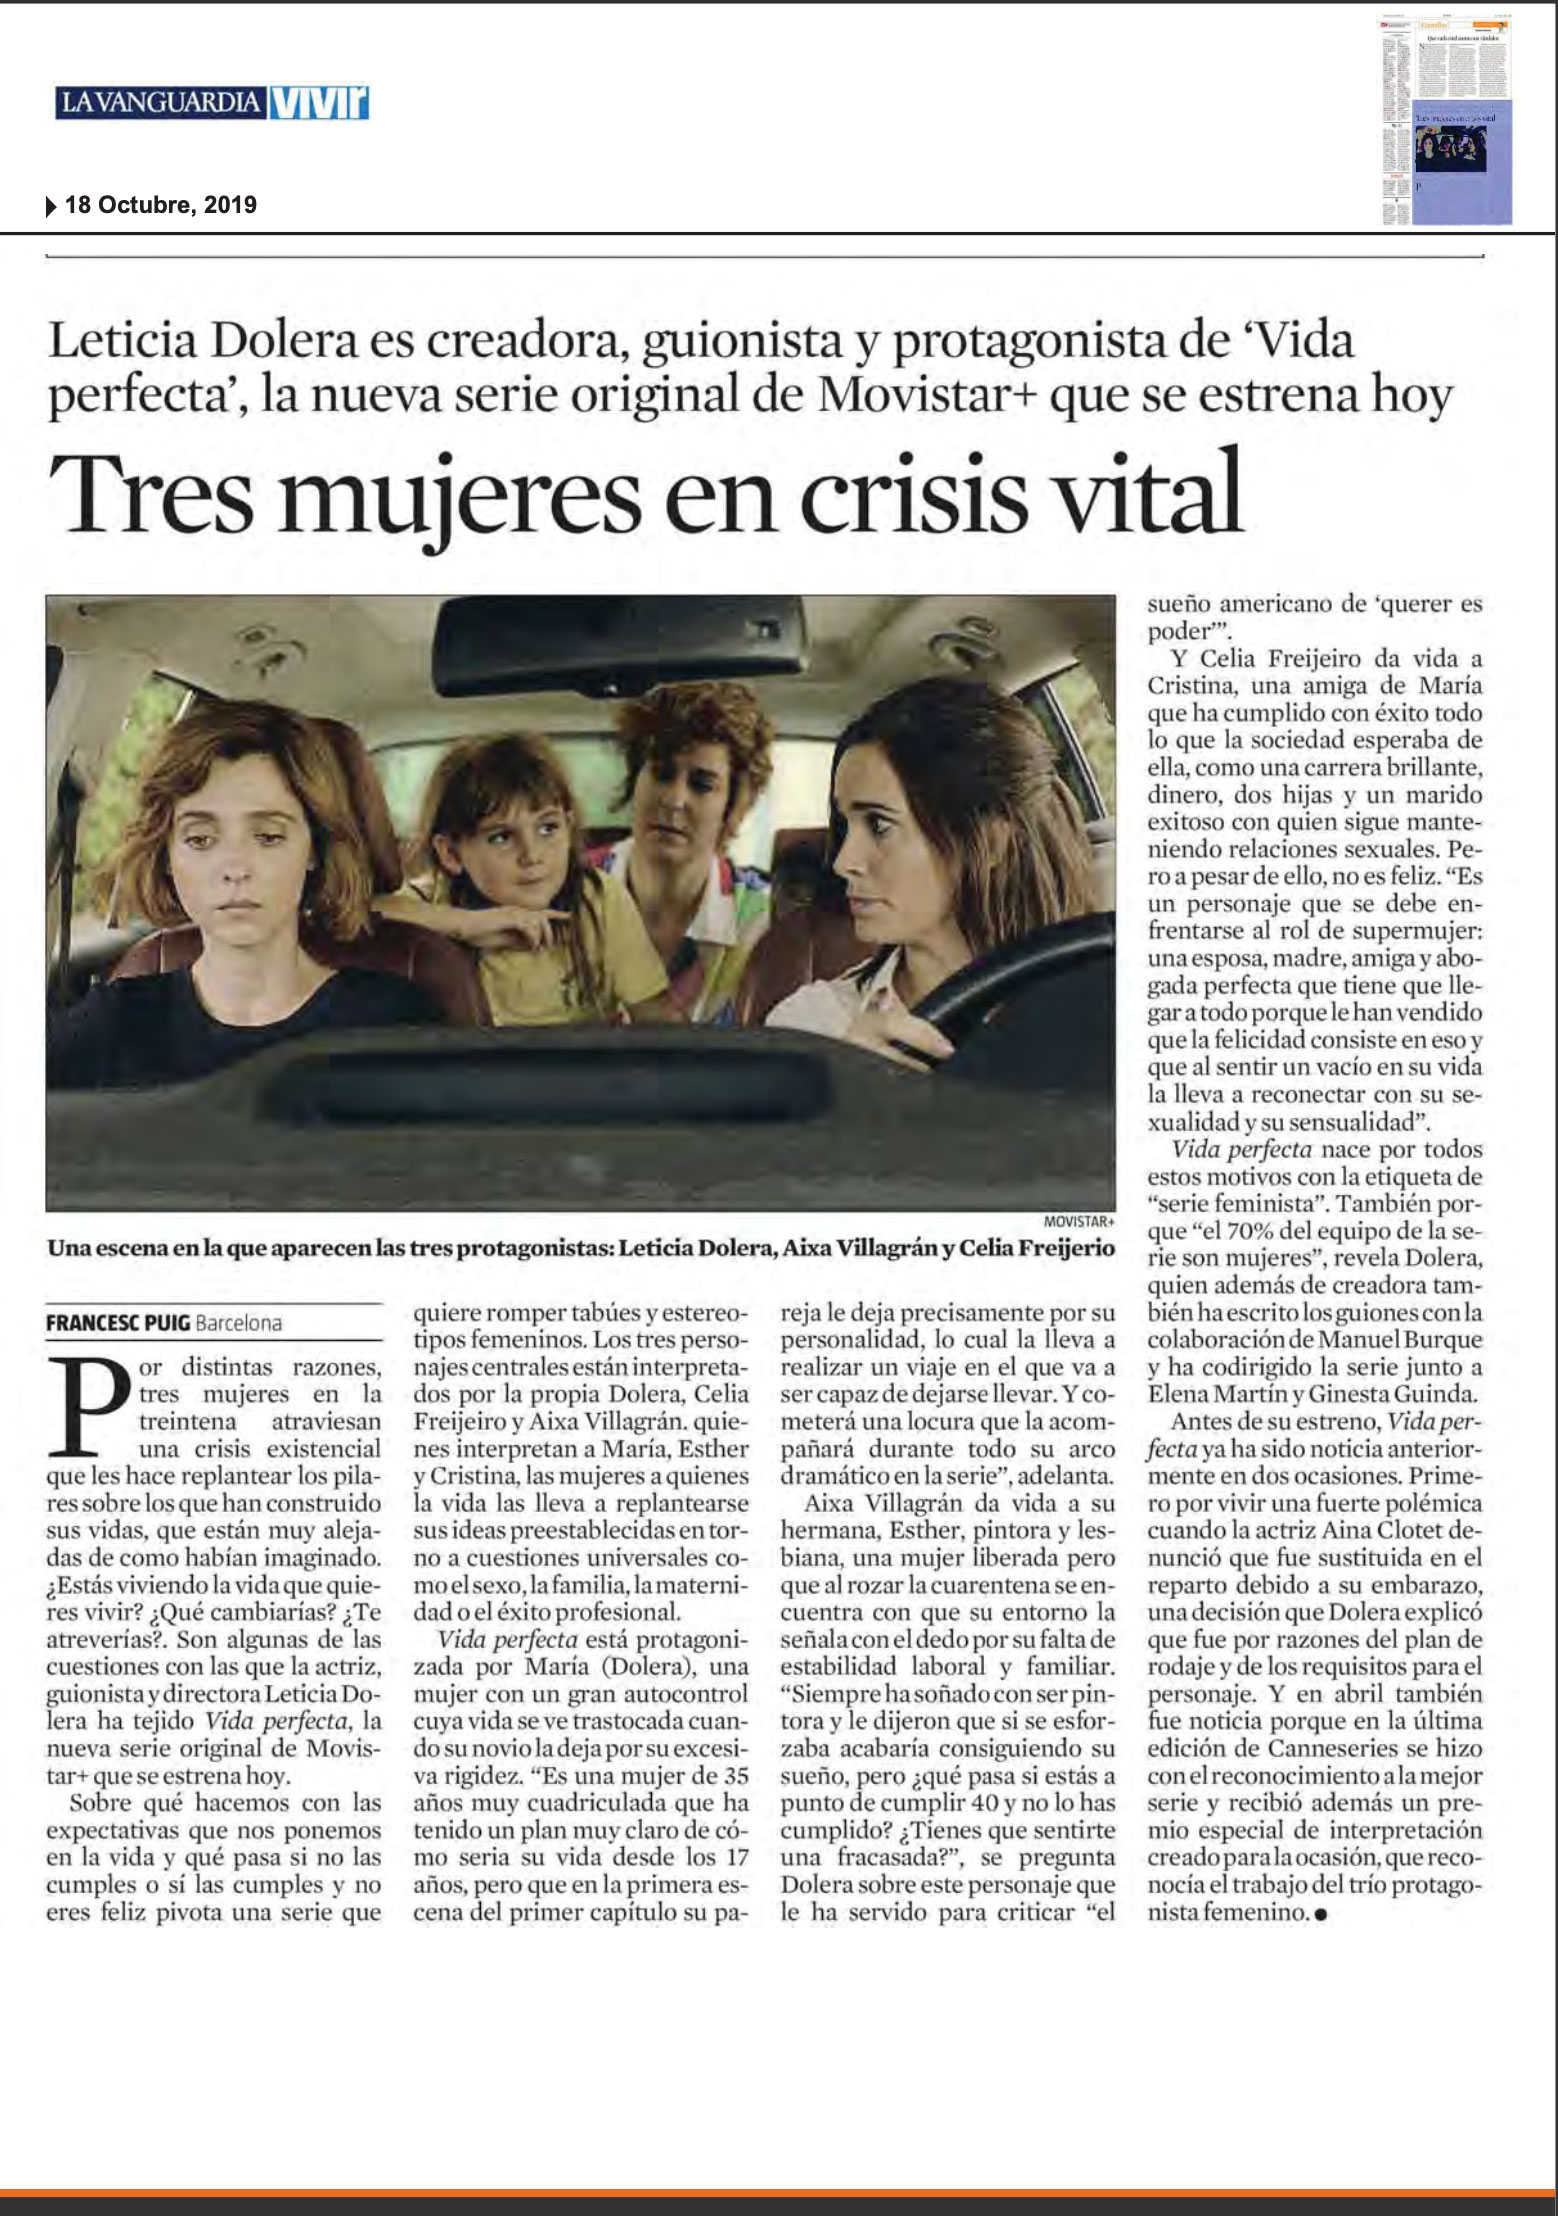 LA VANGUARDIA - Oct. 2019